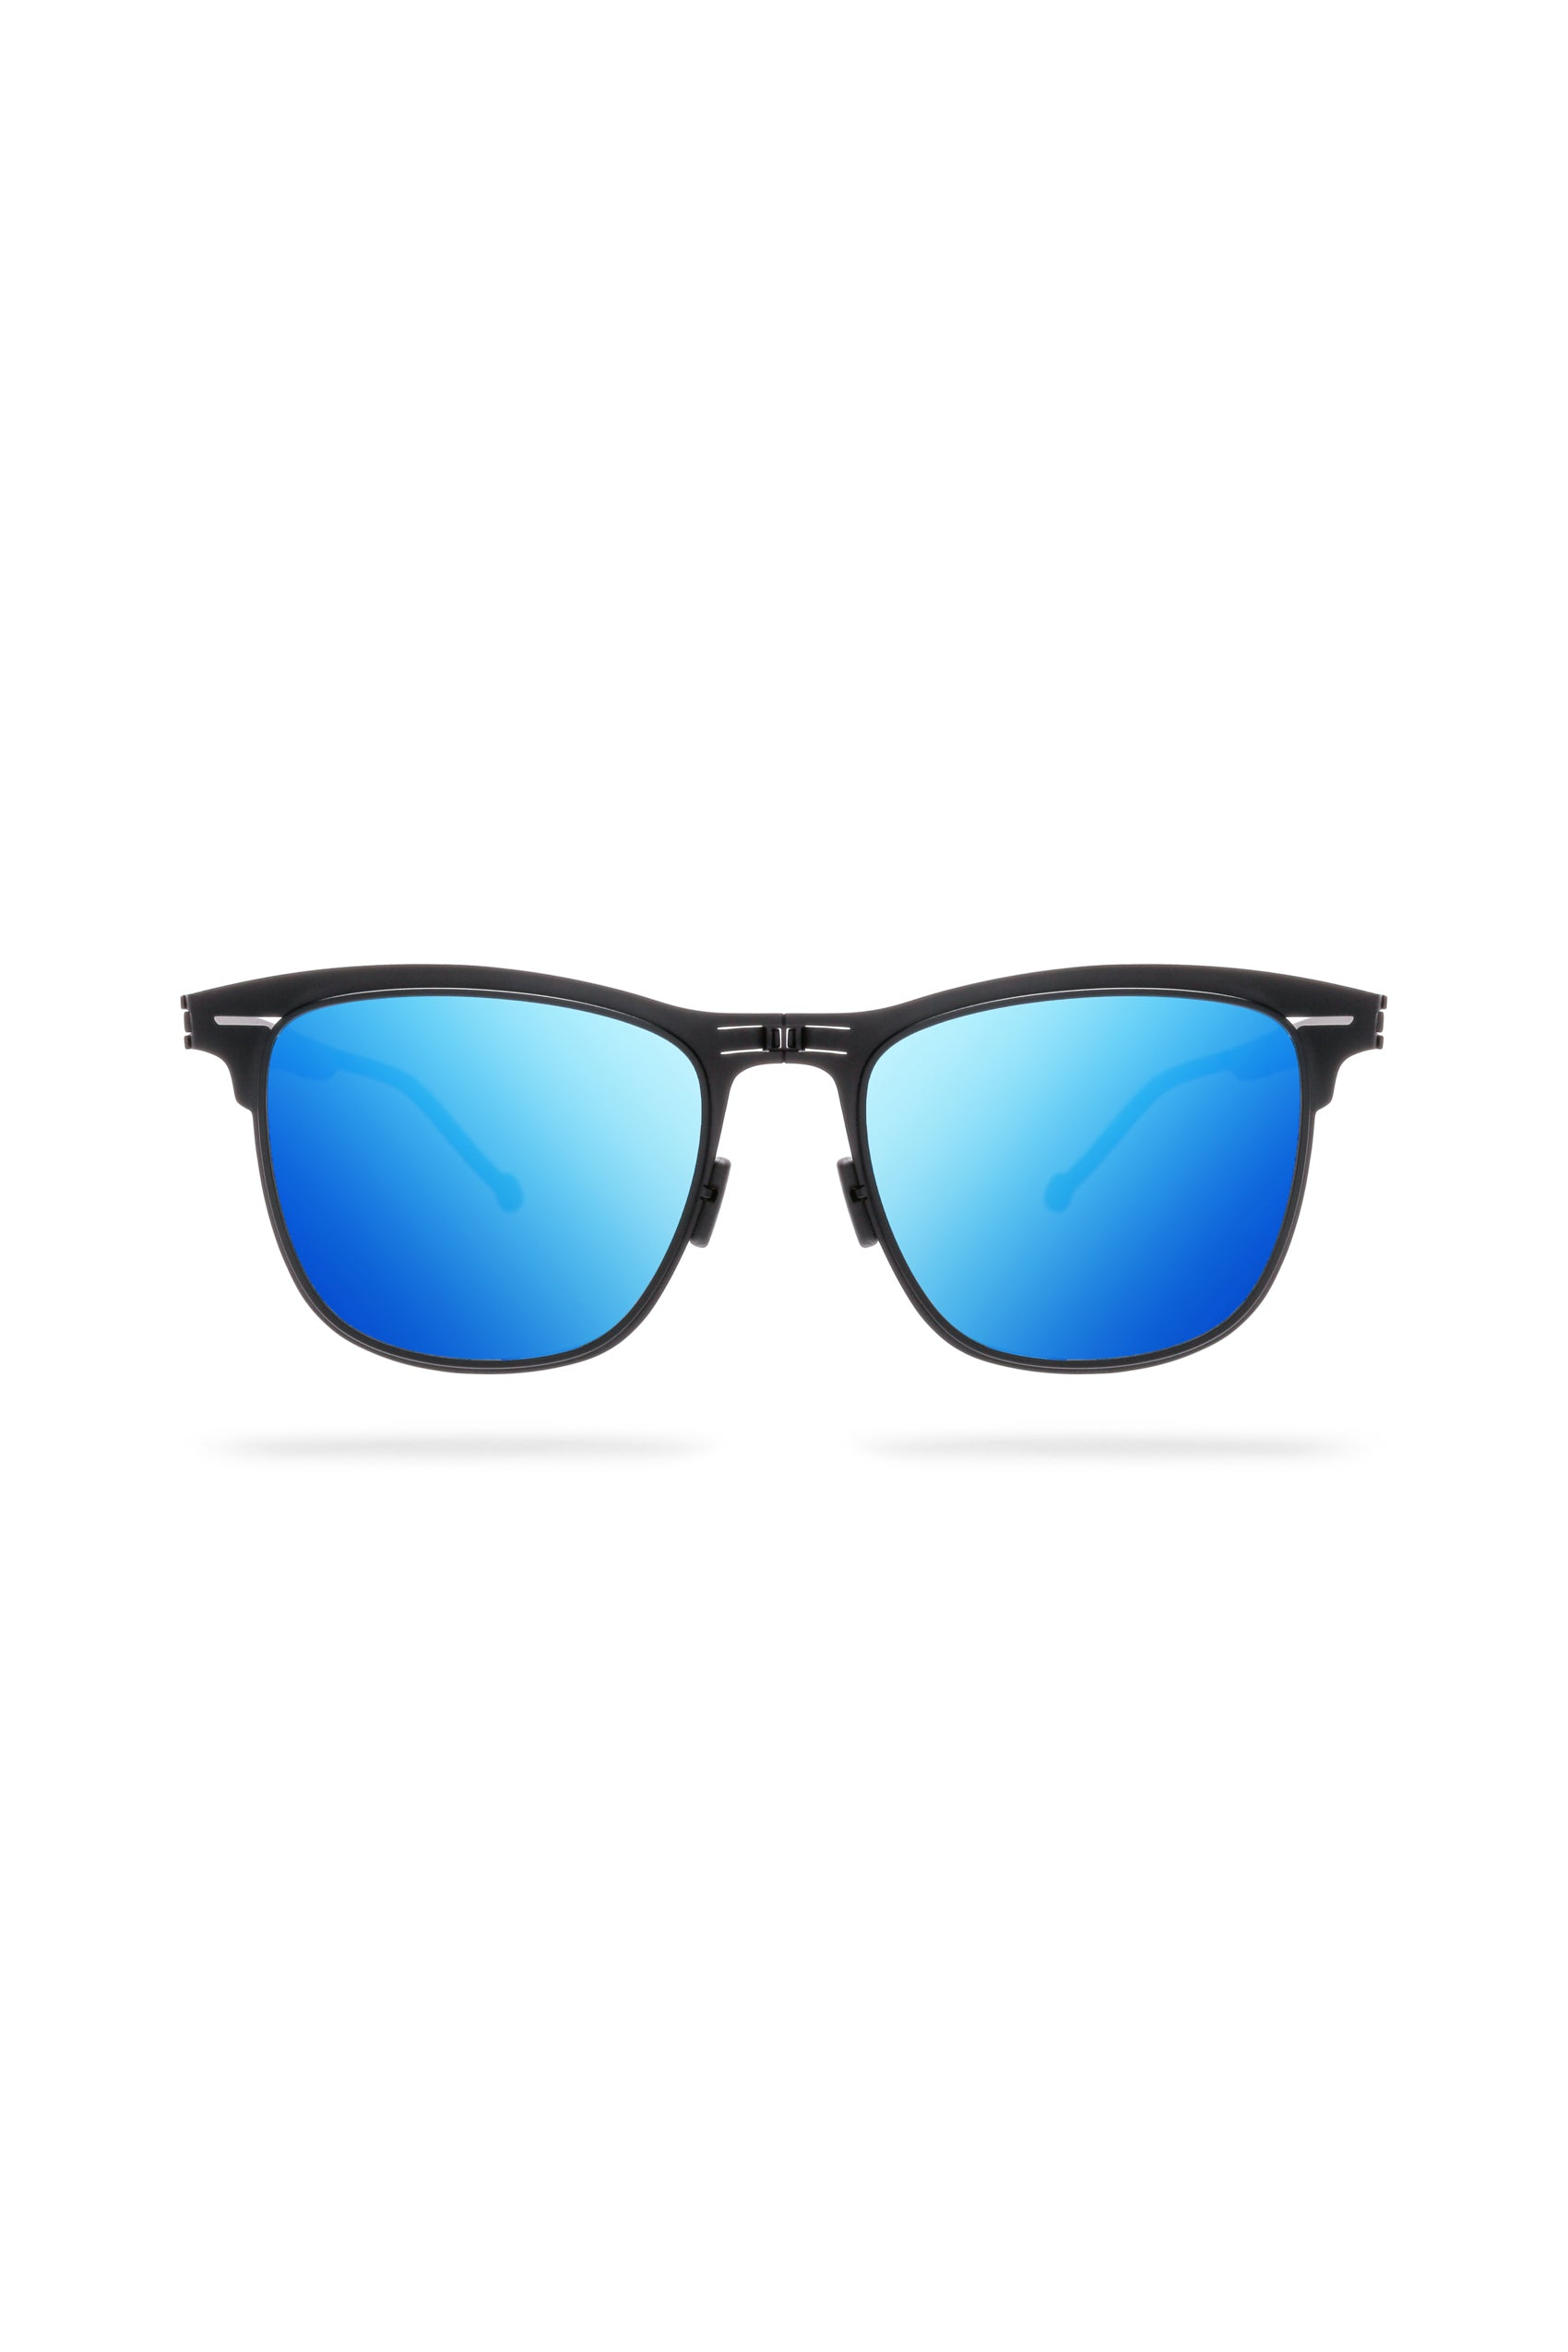 ROAV Folding Sunglasses - Jett